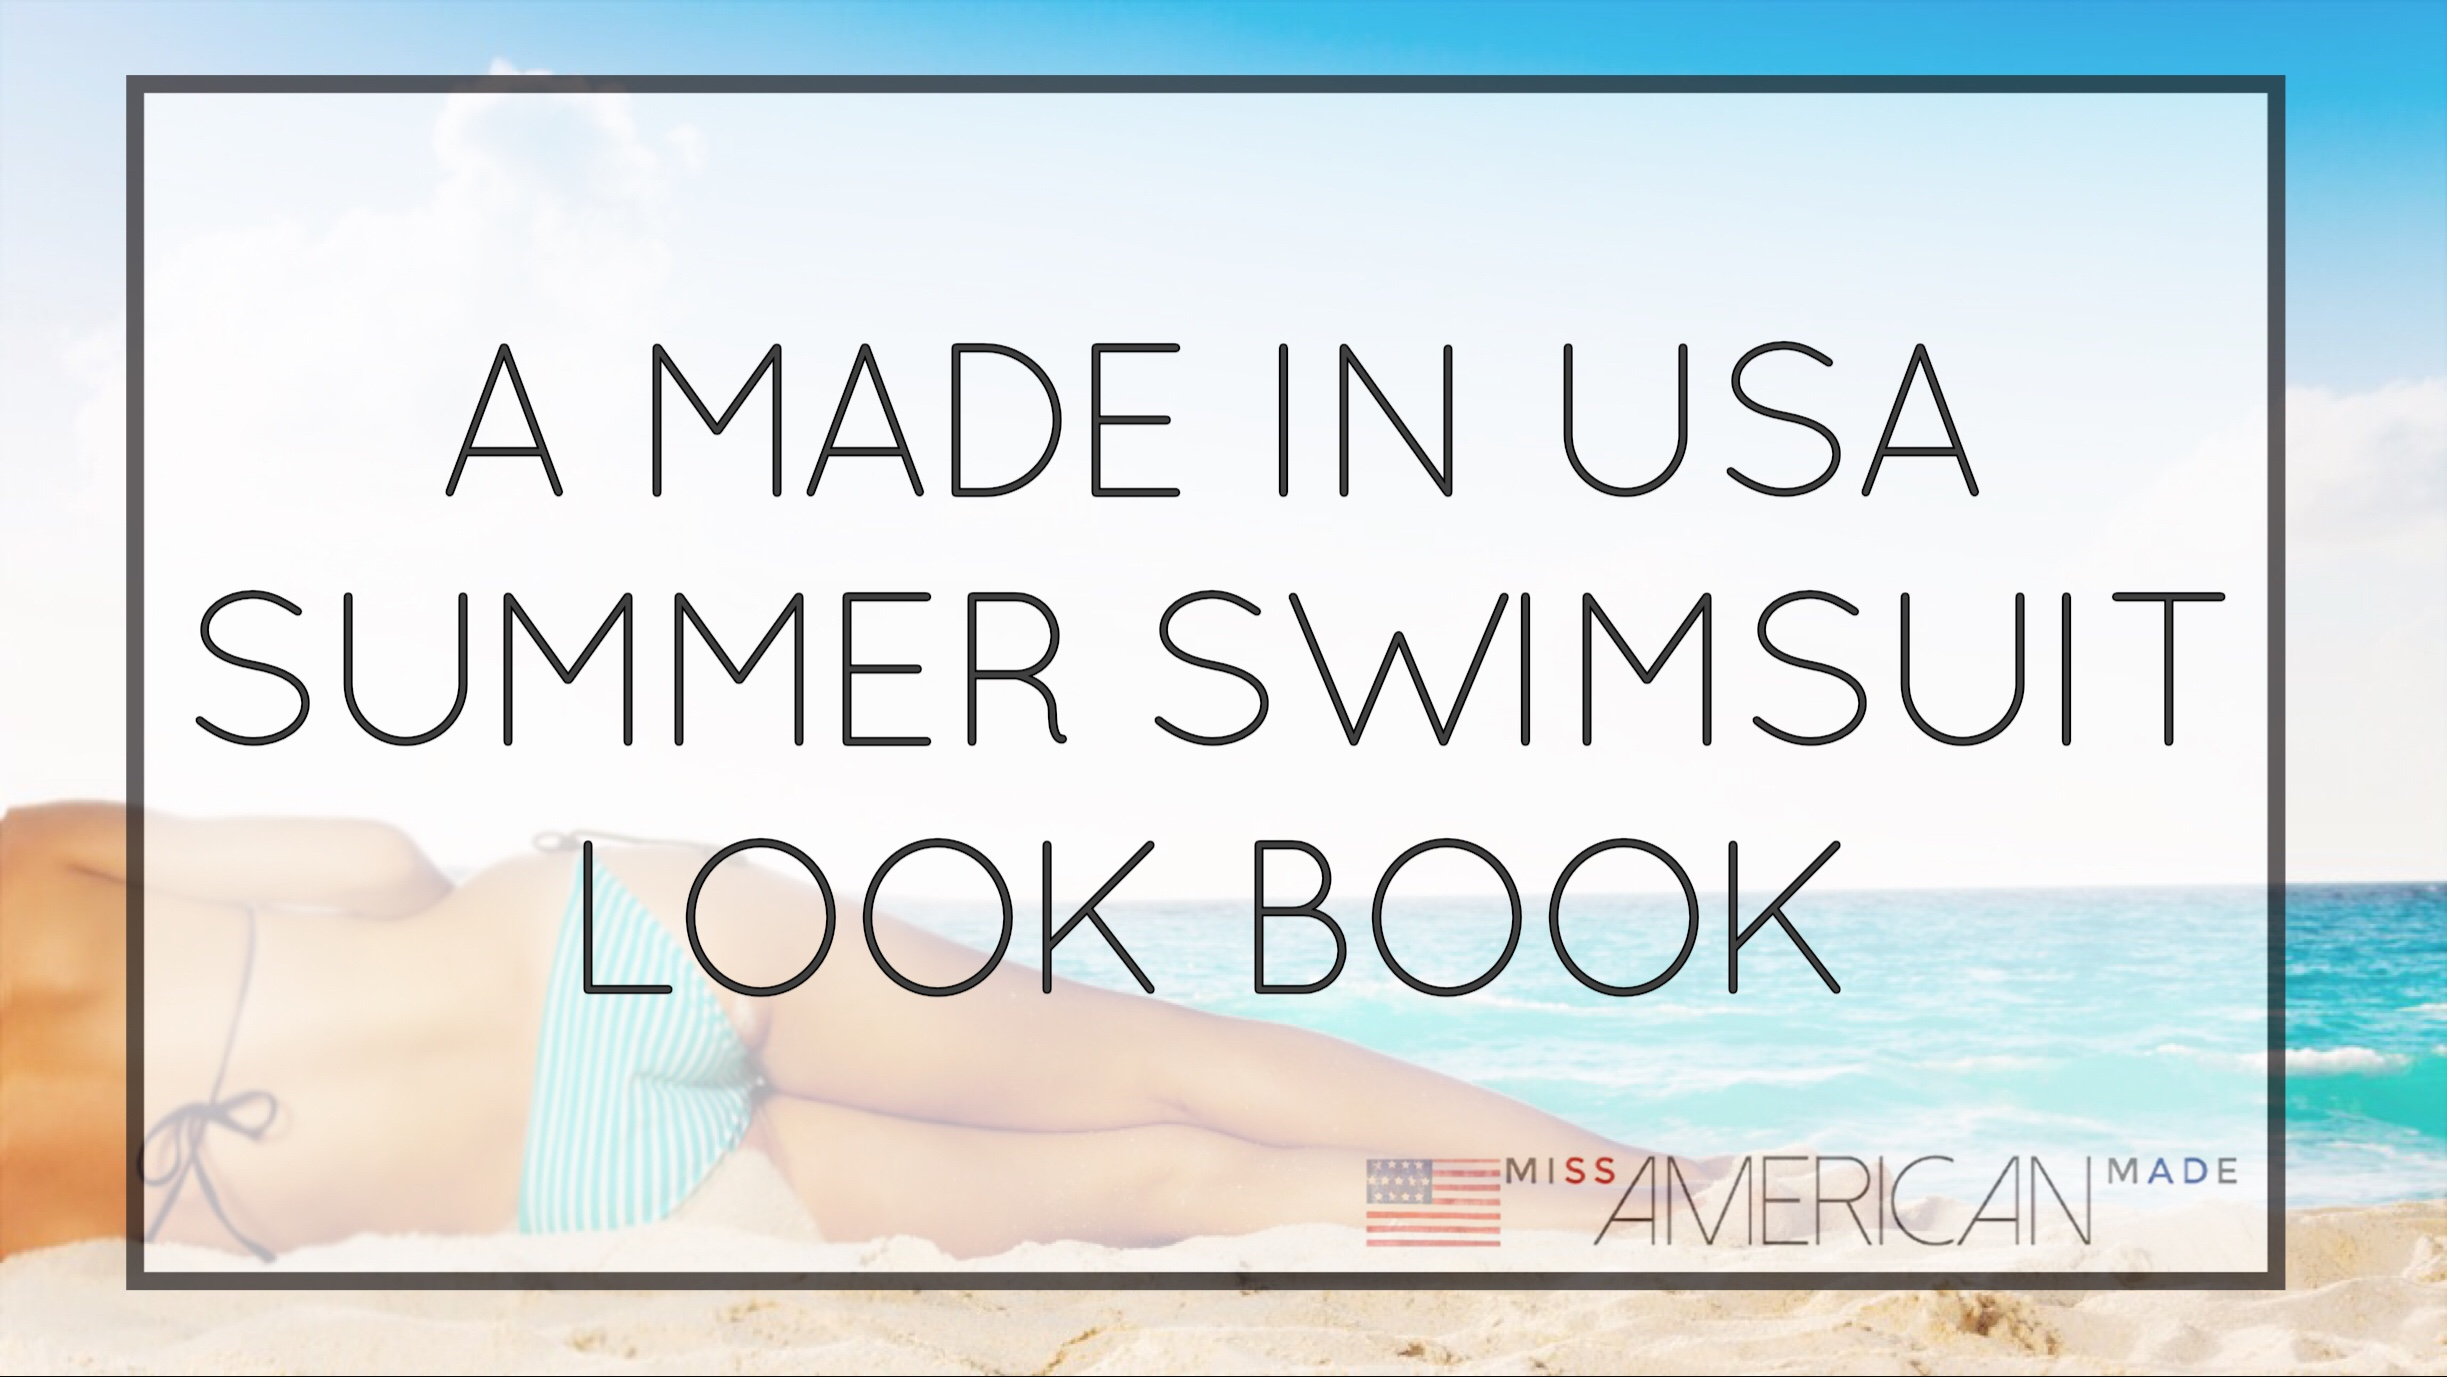 A Made In USA Summer Swimsuit Look Book! Tons of styles, brands, and colors. Check out all of these adorable swimsuits, all made in USA!